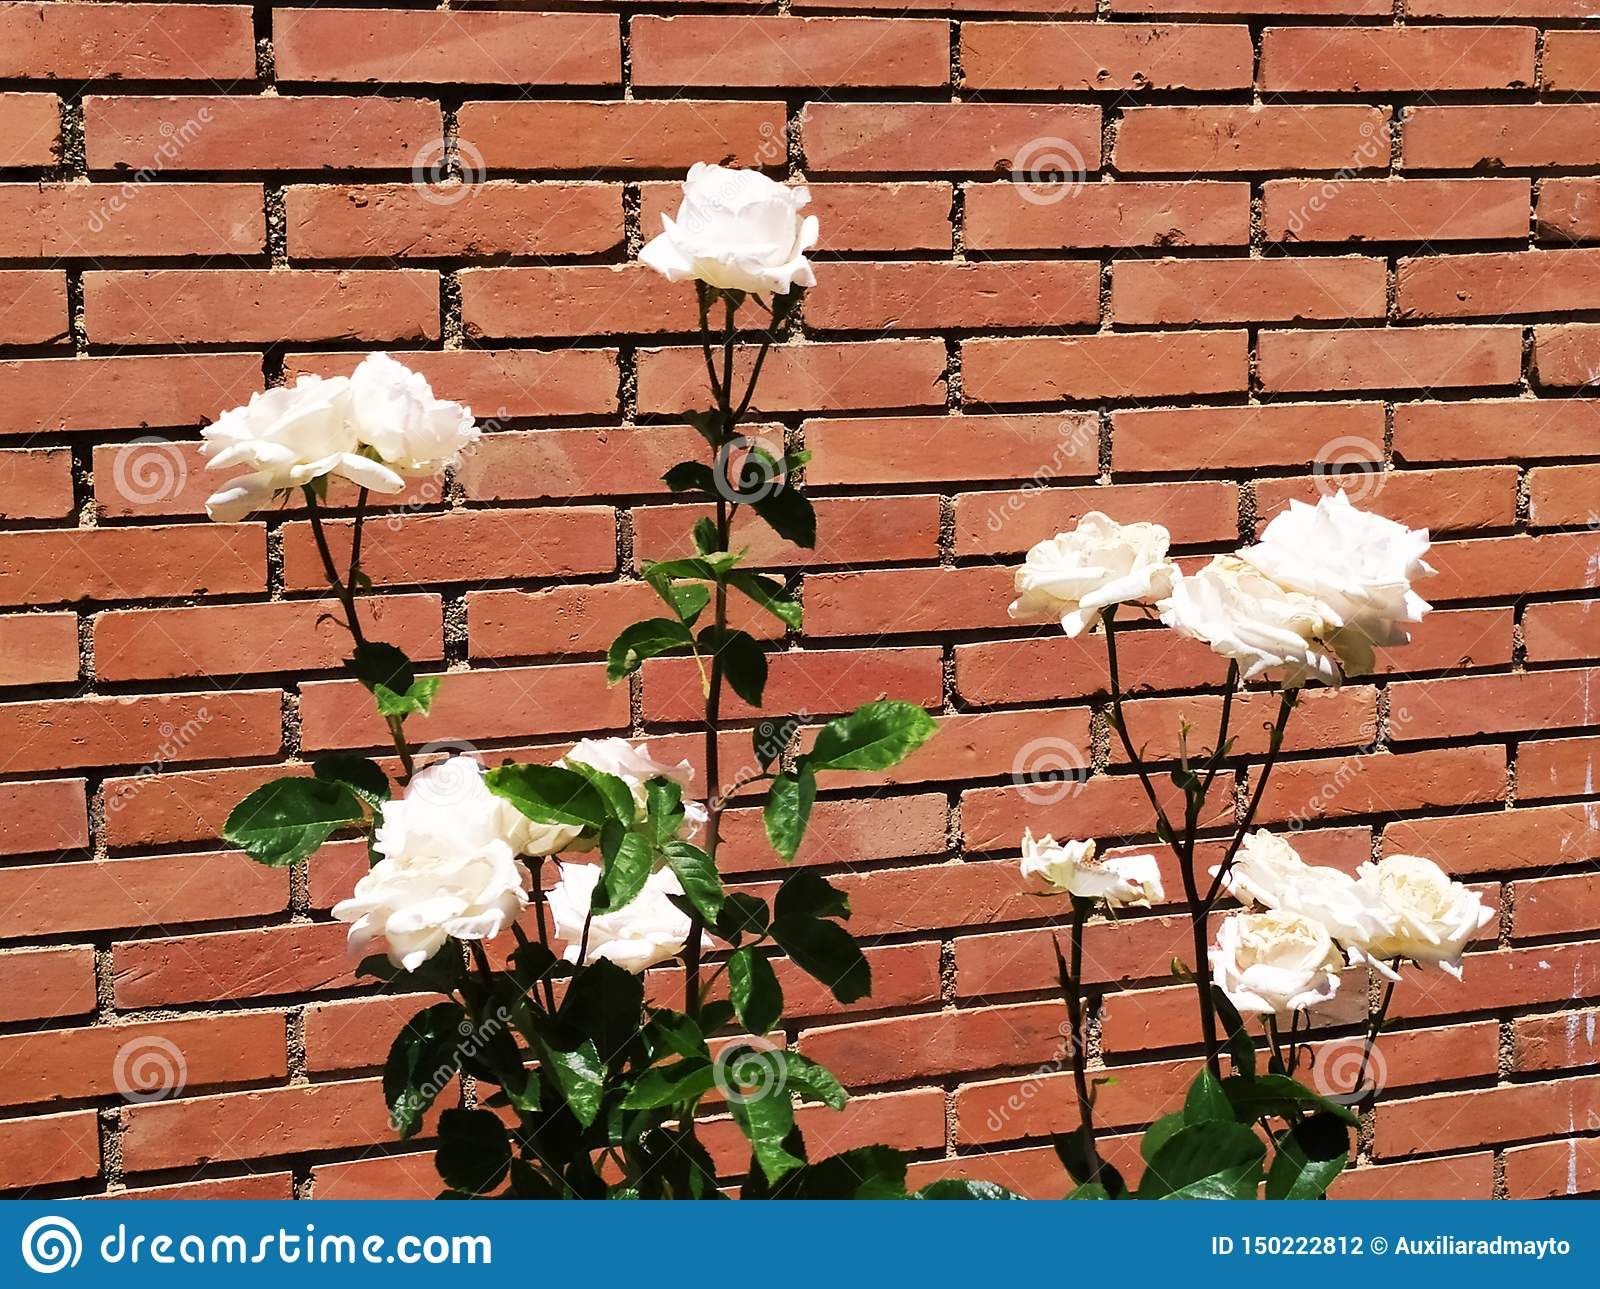 White roses and brick wall